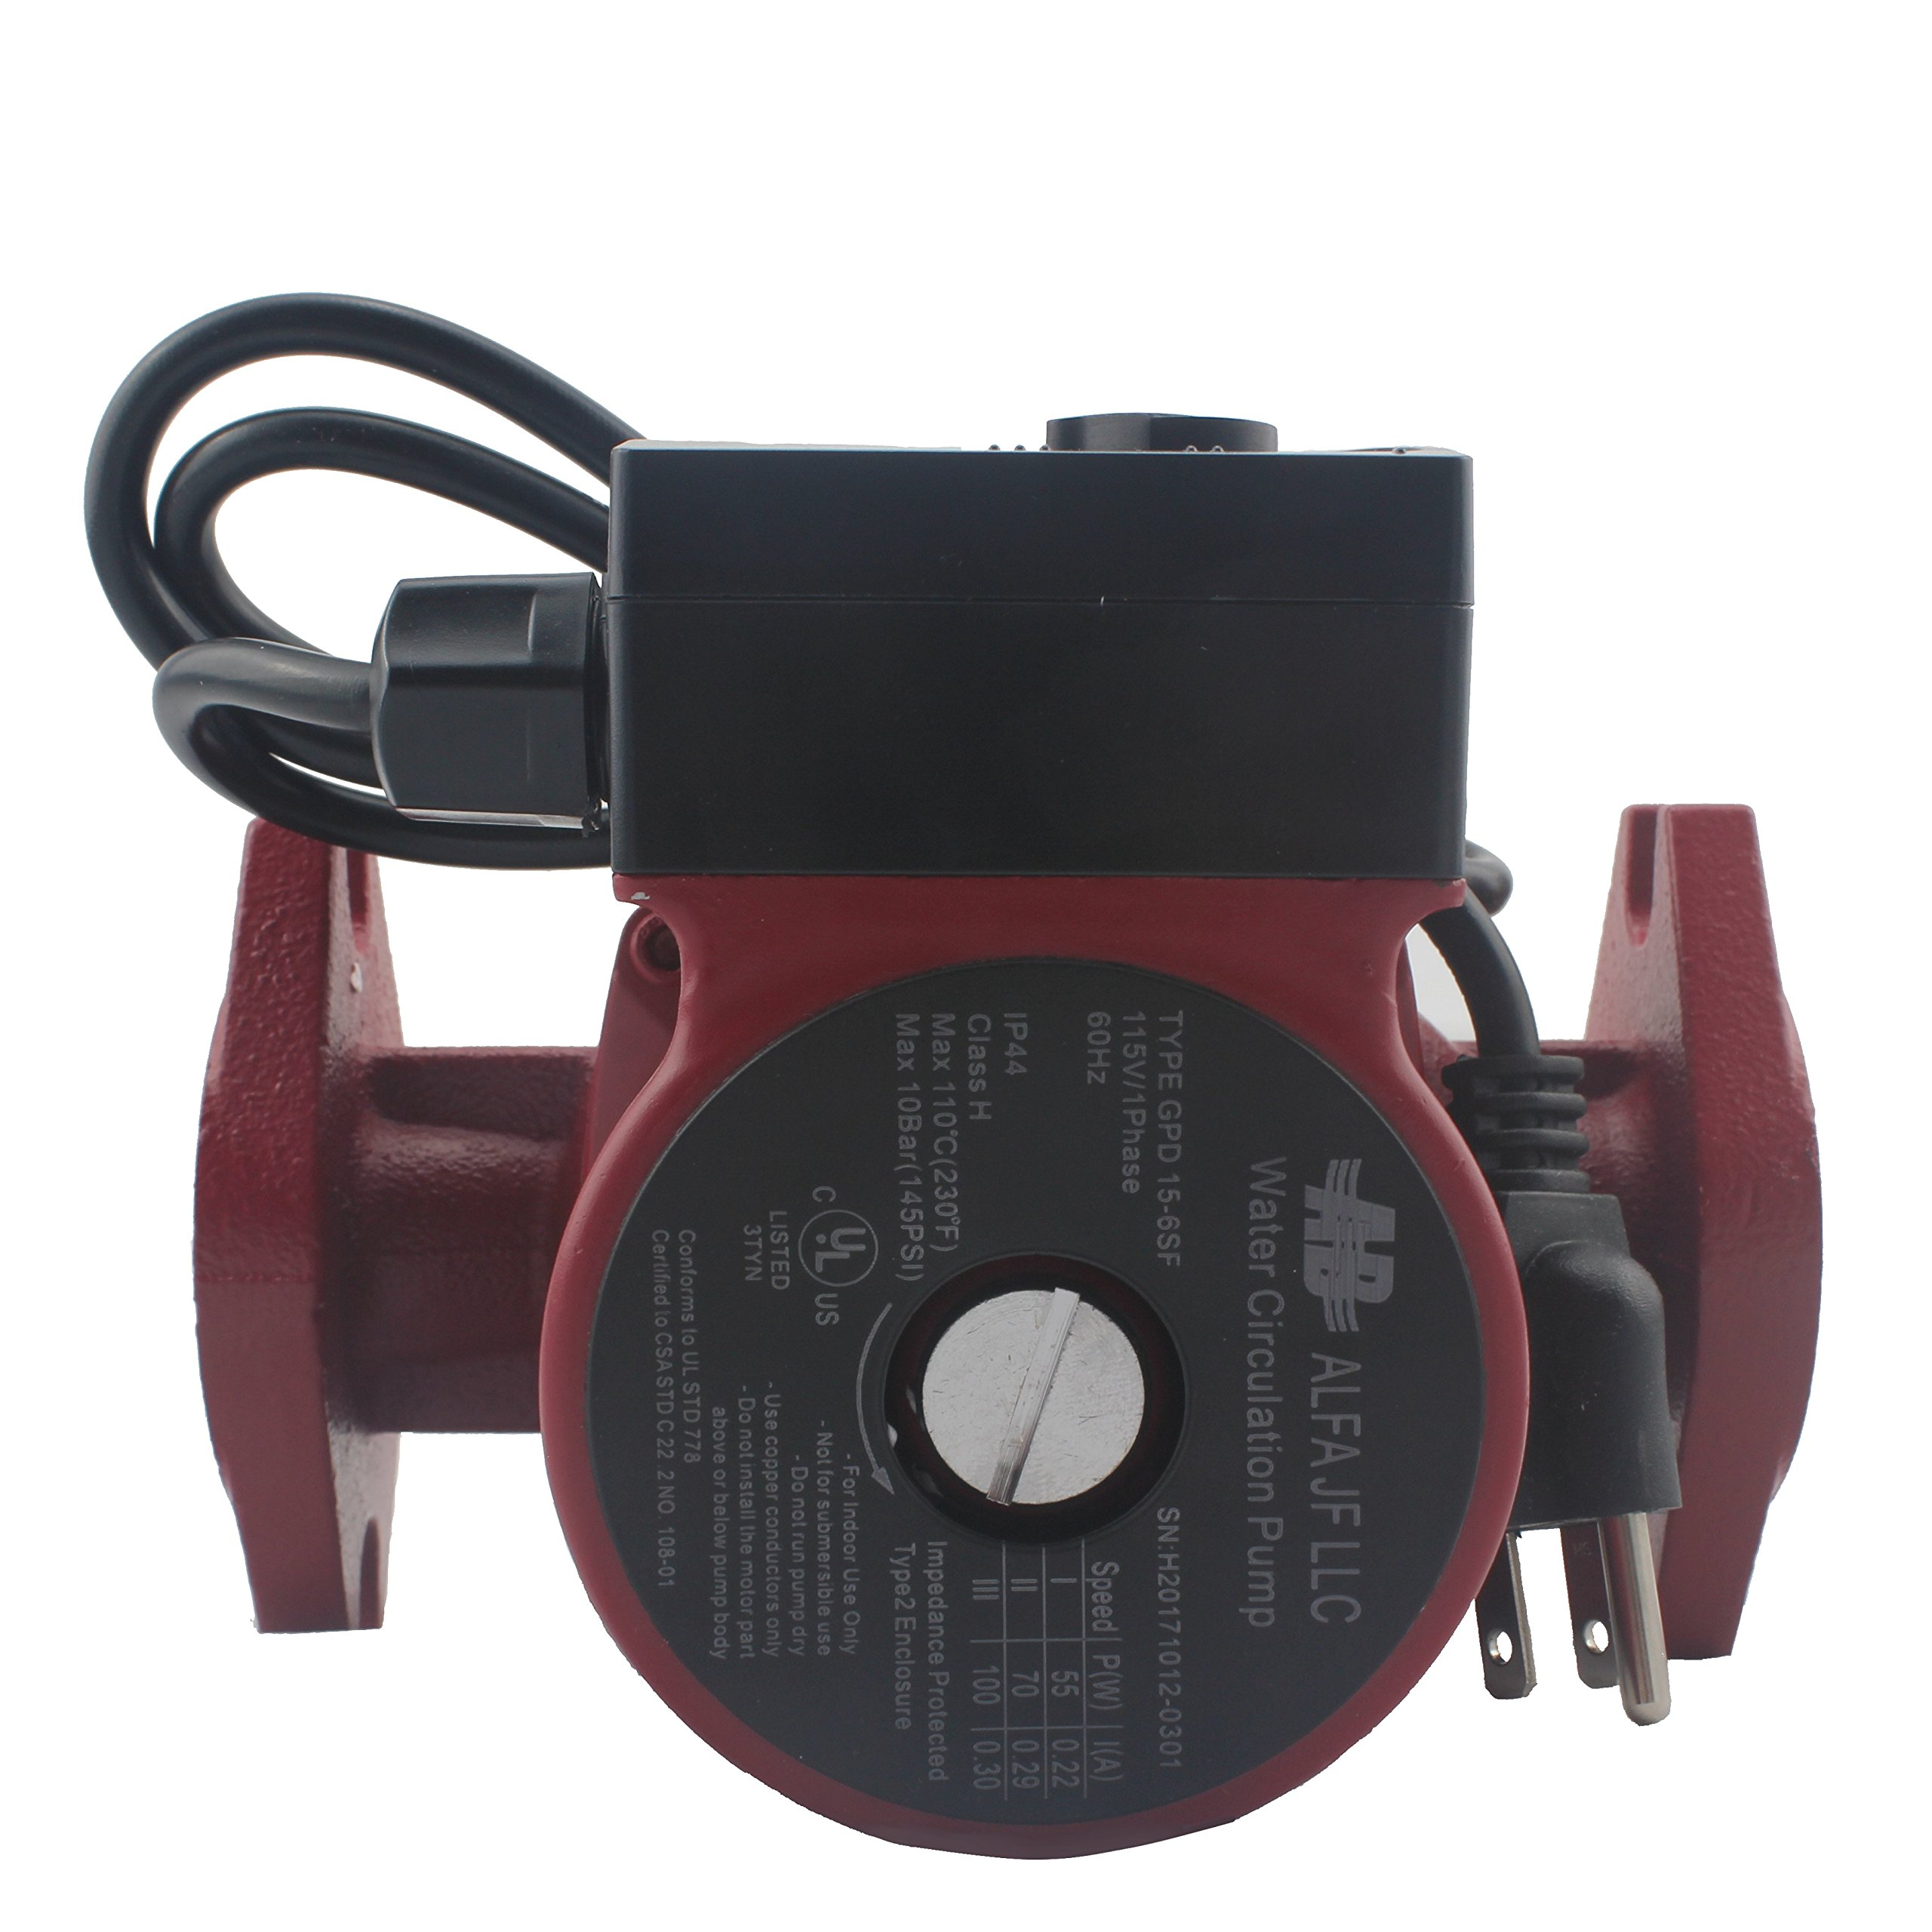 WiseWater Circulation/Circulating Pump with Internal Threaded Flanges - Up to 19.7 Feet Head Range, 3 Speed Switchable for Hydronic Radiant Heating and Plumbing by AB (Image #1)